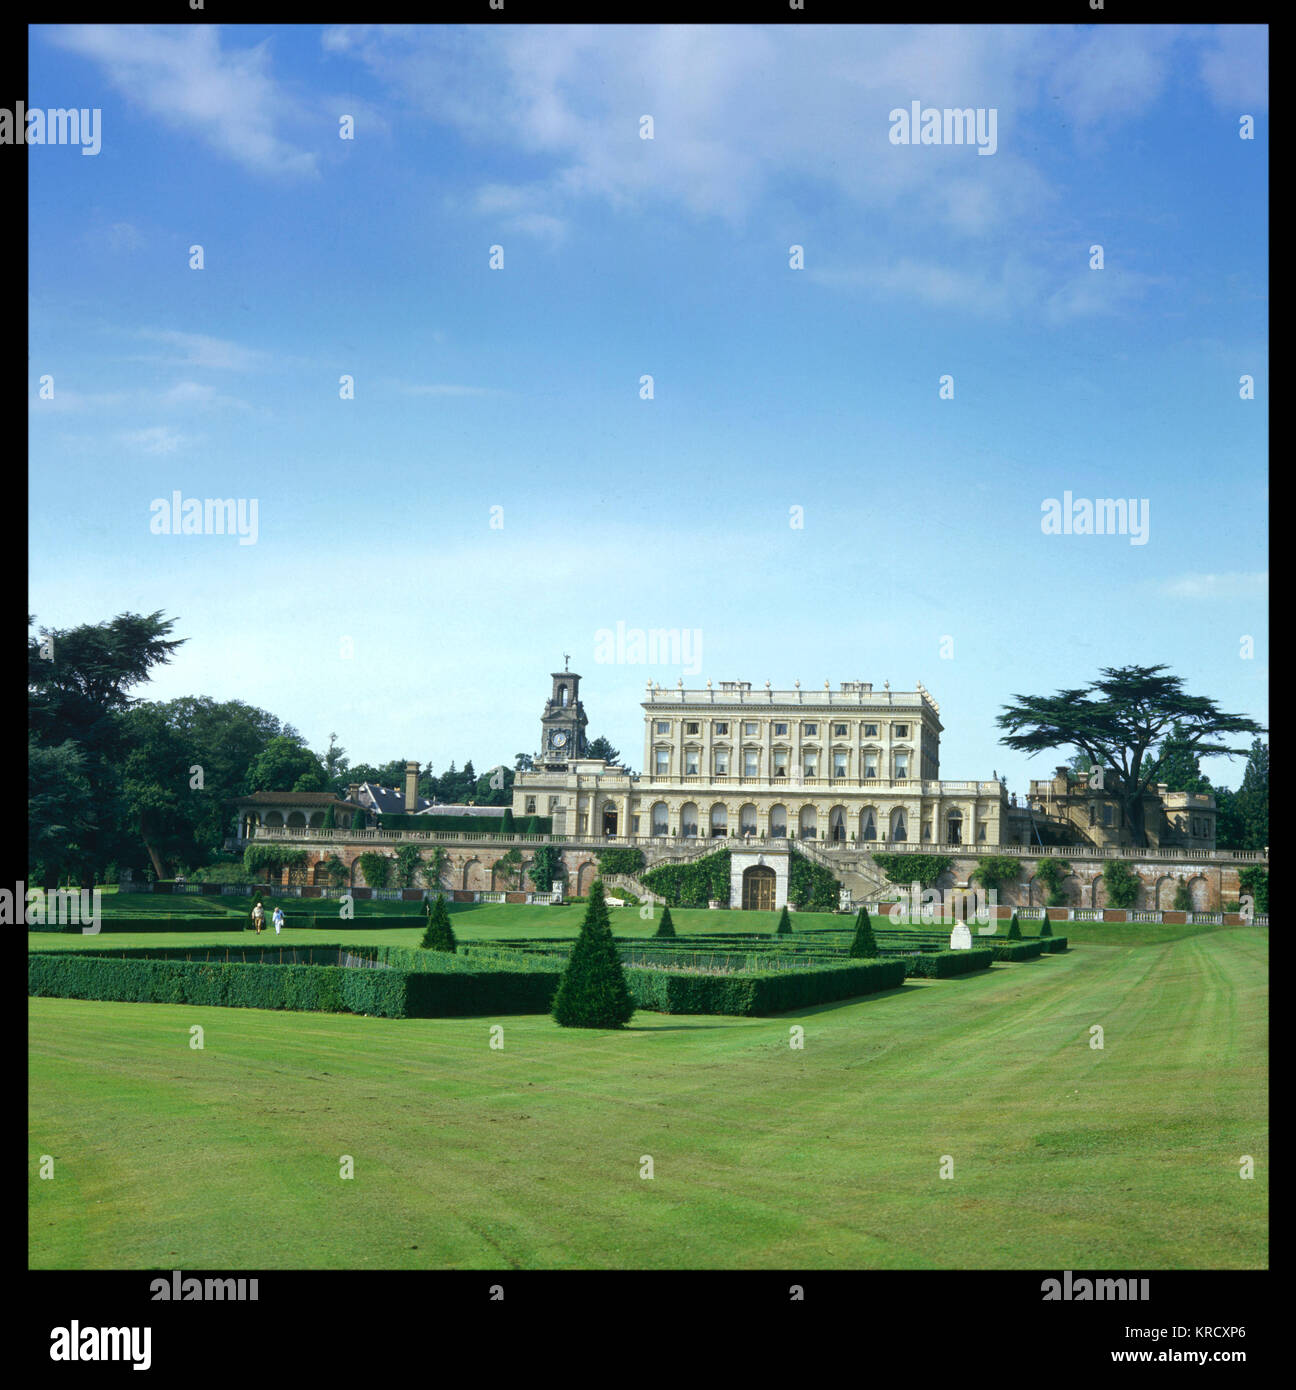 Cliveden, designed by Sir  Charles Barry, was built 1850  - 1851 for the Duke & Duchess  of Sutherland: - Stock Image